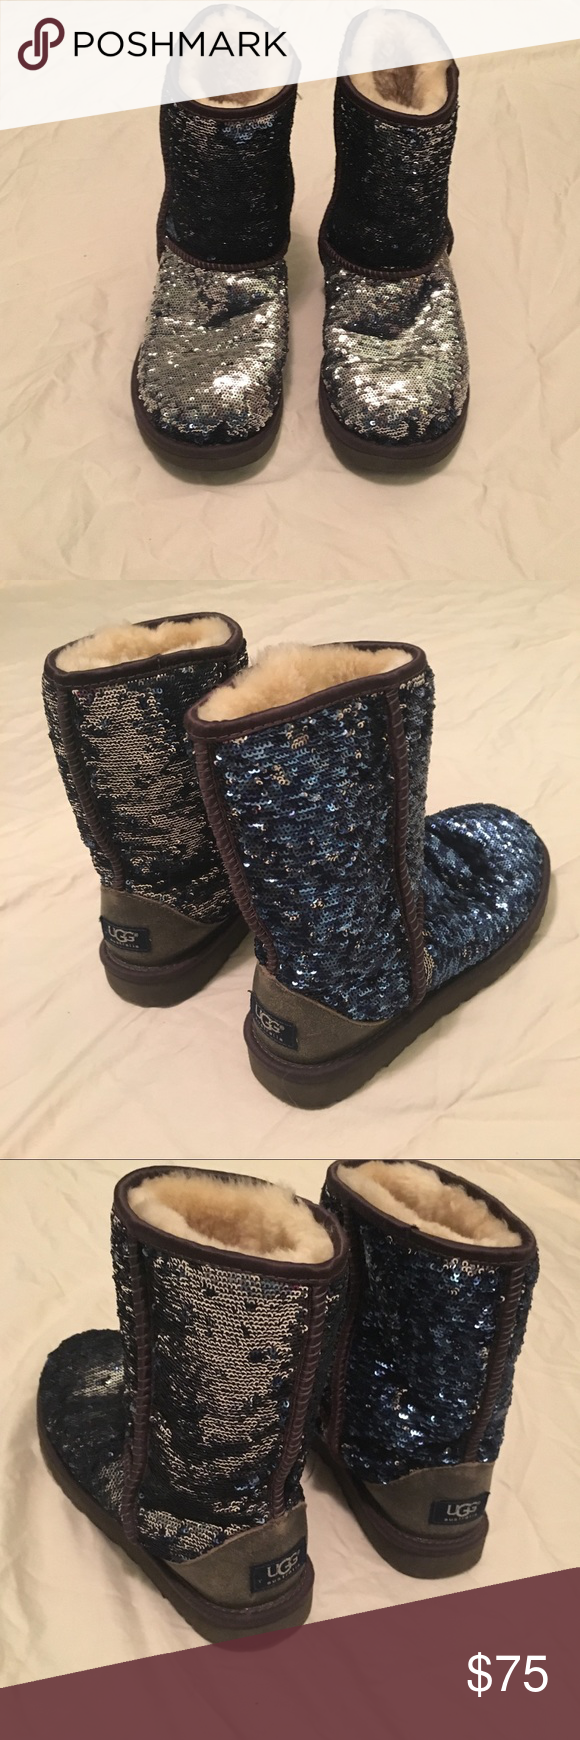 Classic sequence UGG boots These UGG boots are blue and silver sequence with brown leather detailing